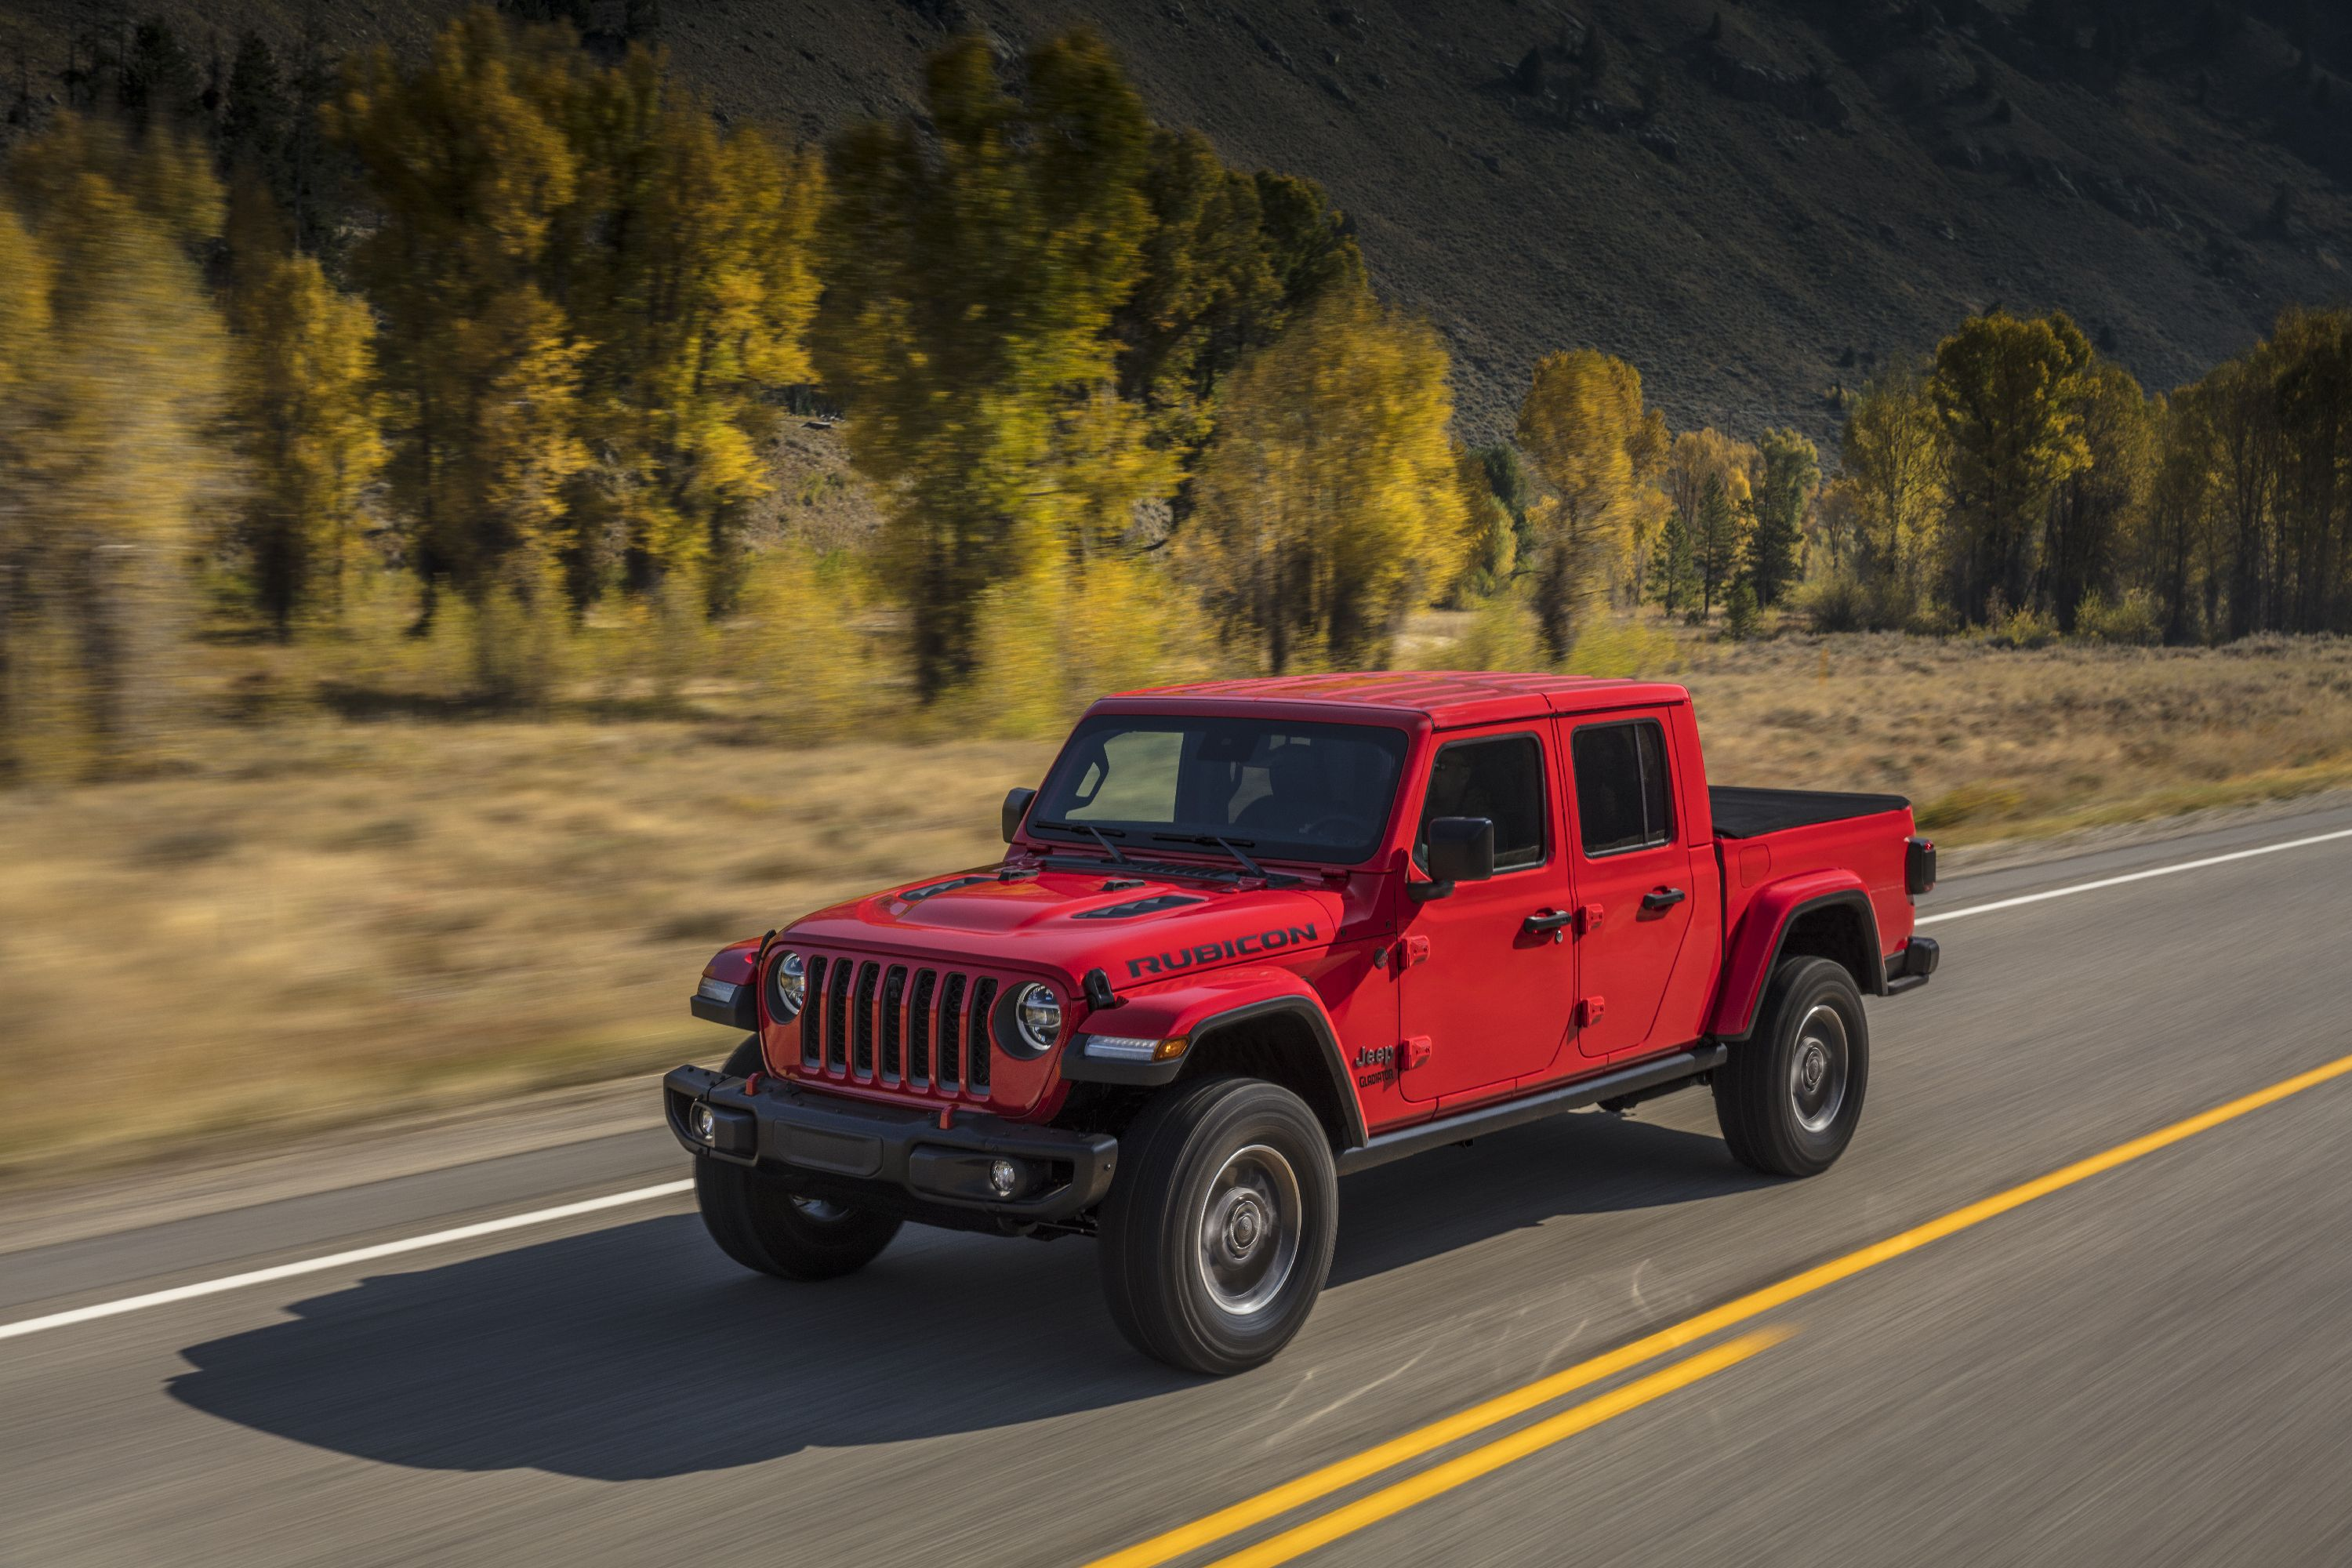 2020 Jeep Gladiator First Look Jeep Gladiator Gladiator Jeep